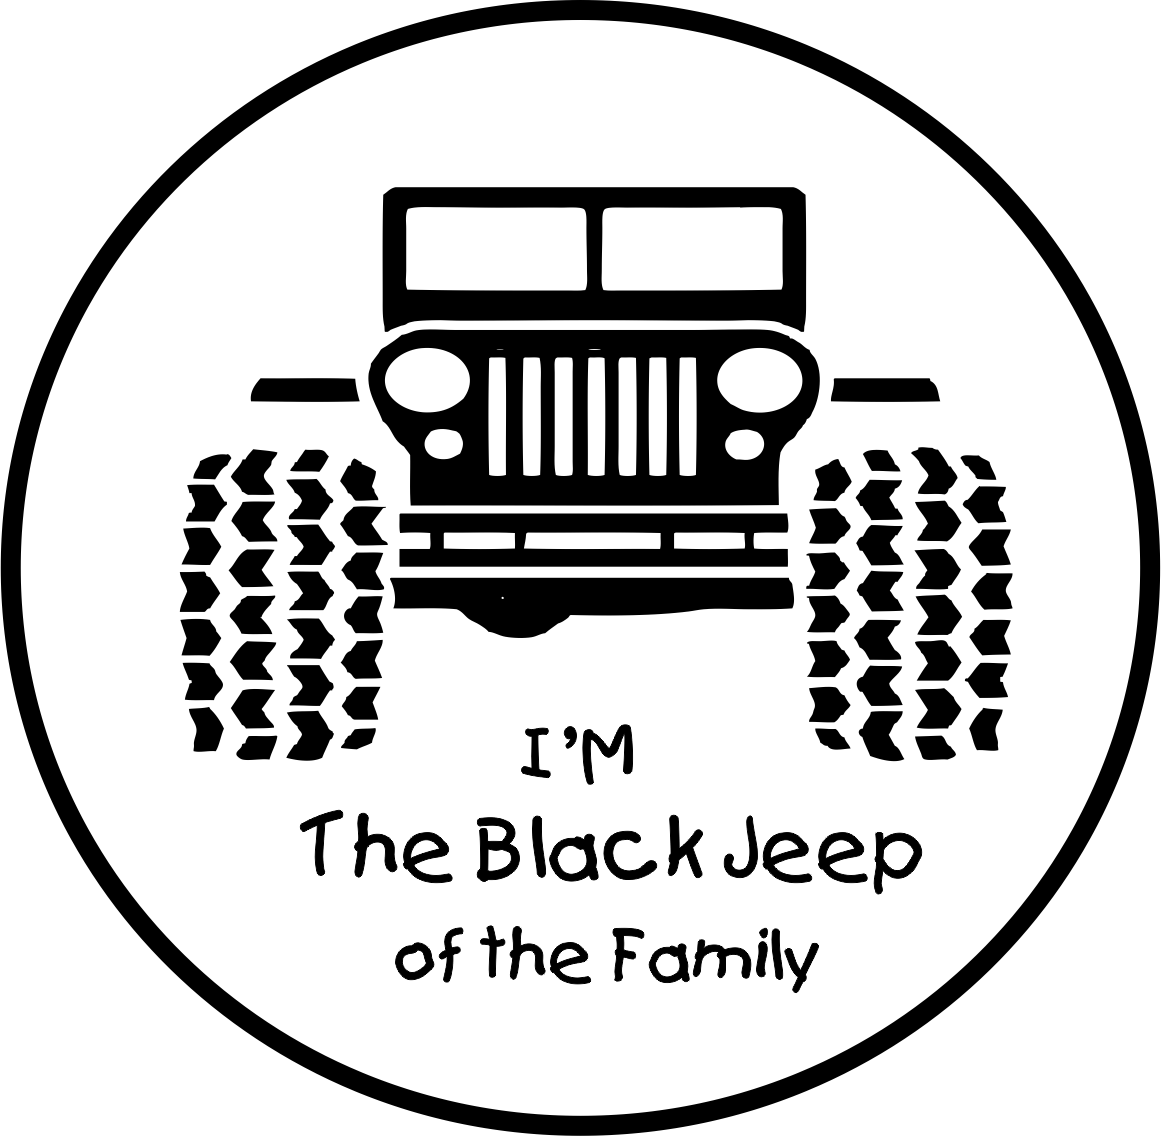 I M The Black Jeep Of The Family